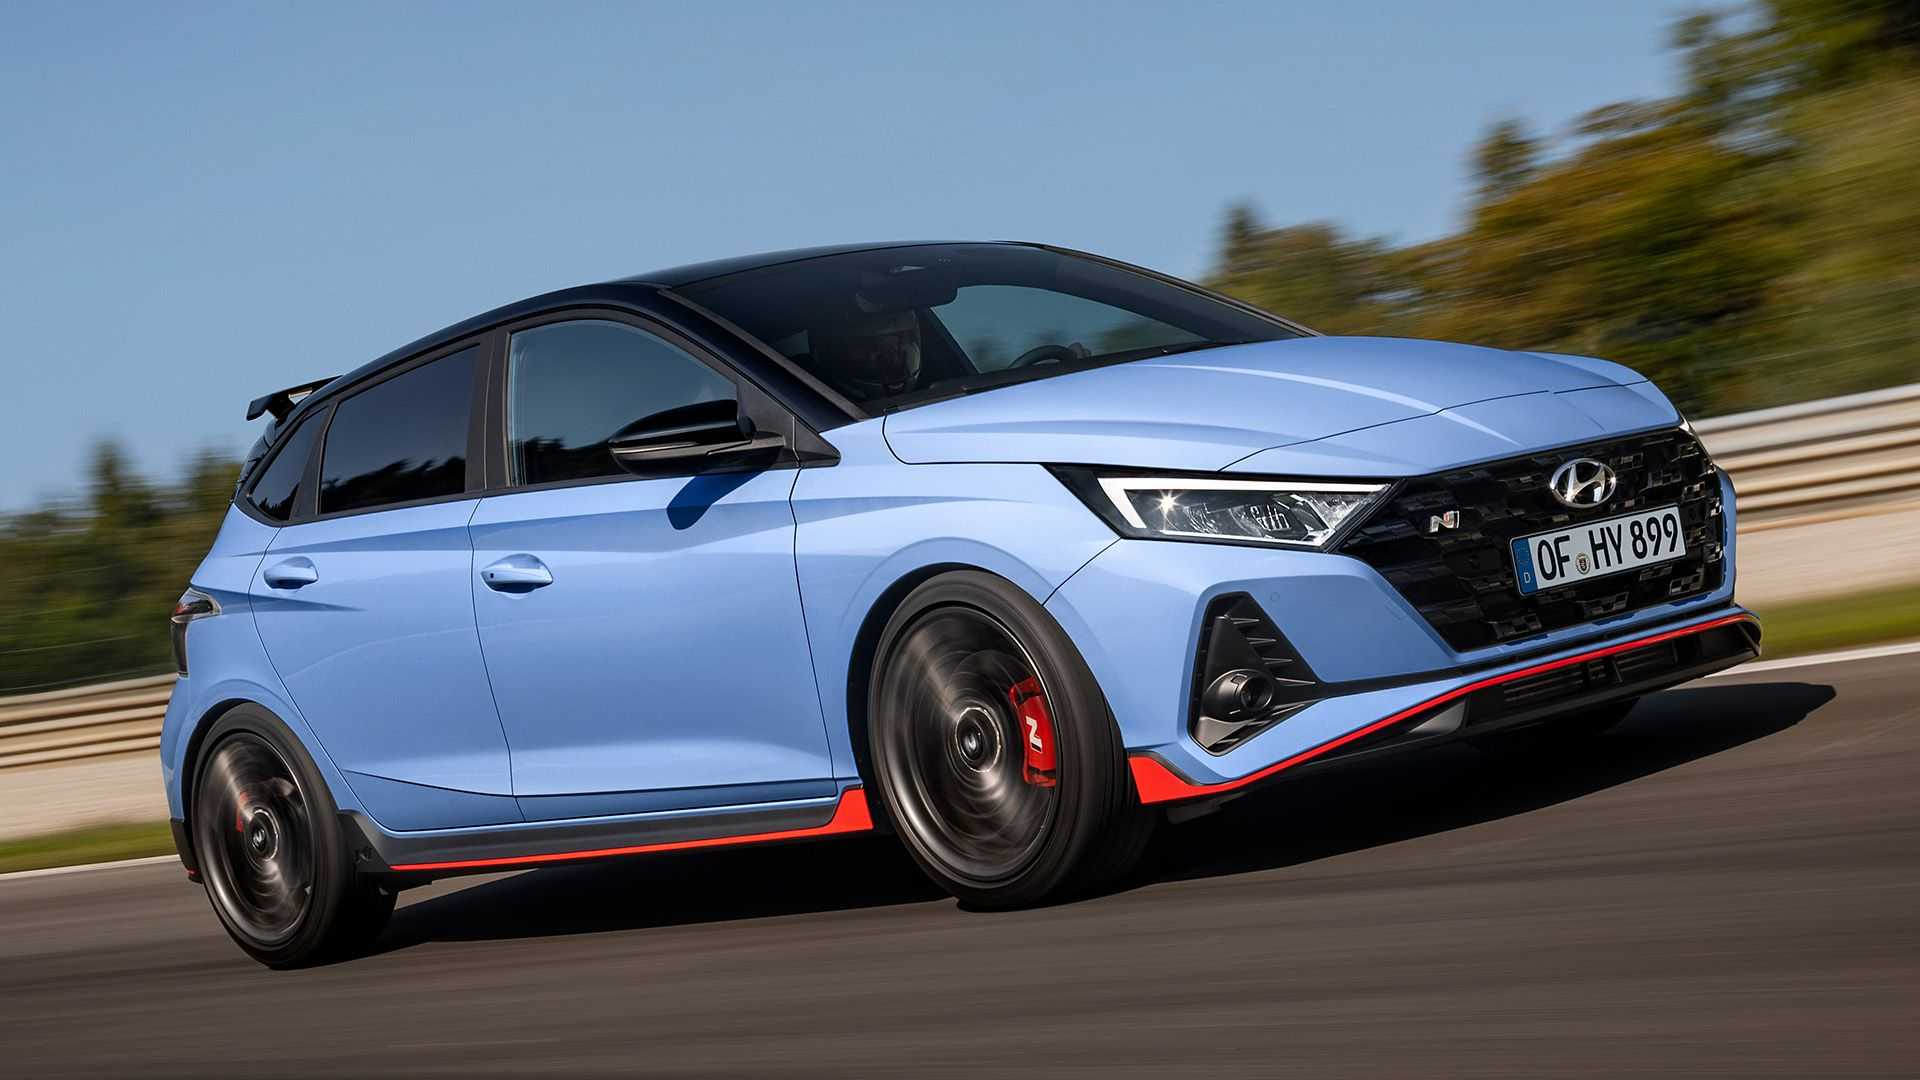 2021 Hyundai i20 N Debuts As A 204-HP Compact Hot Hatch - Motor1